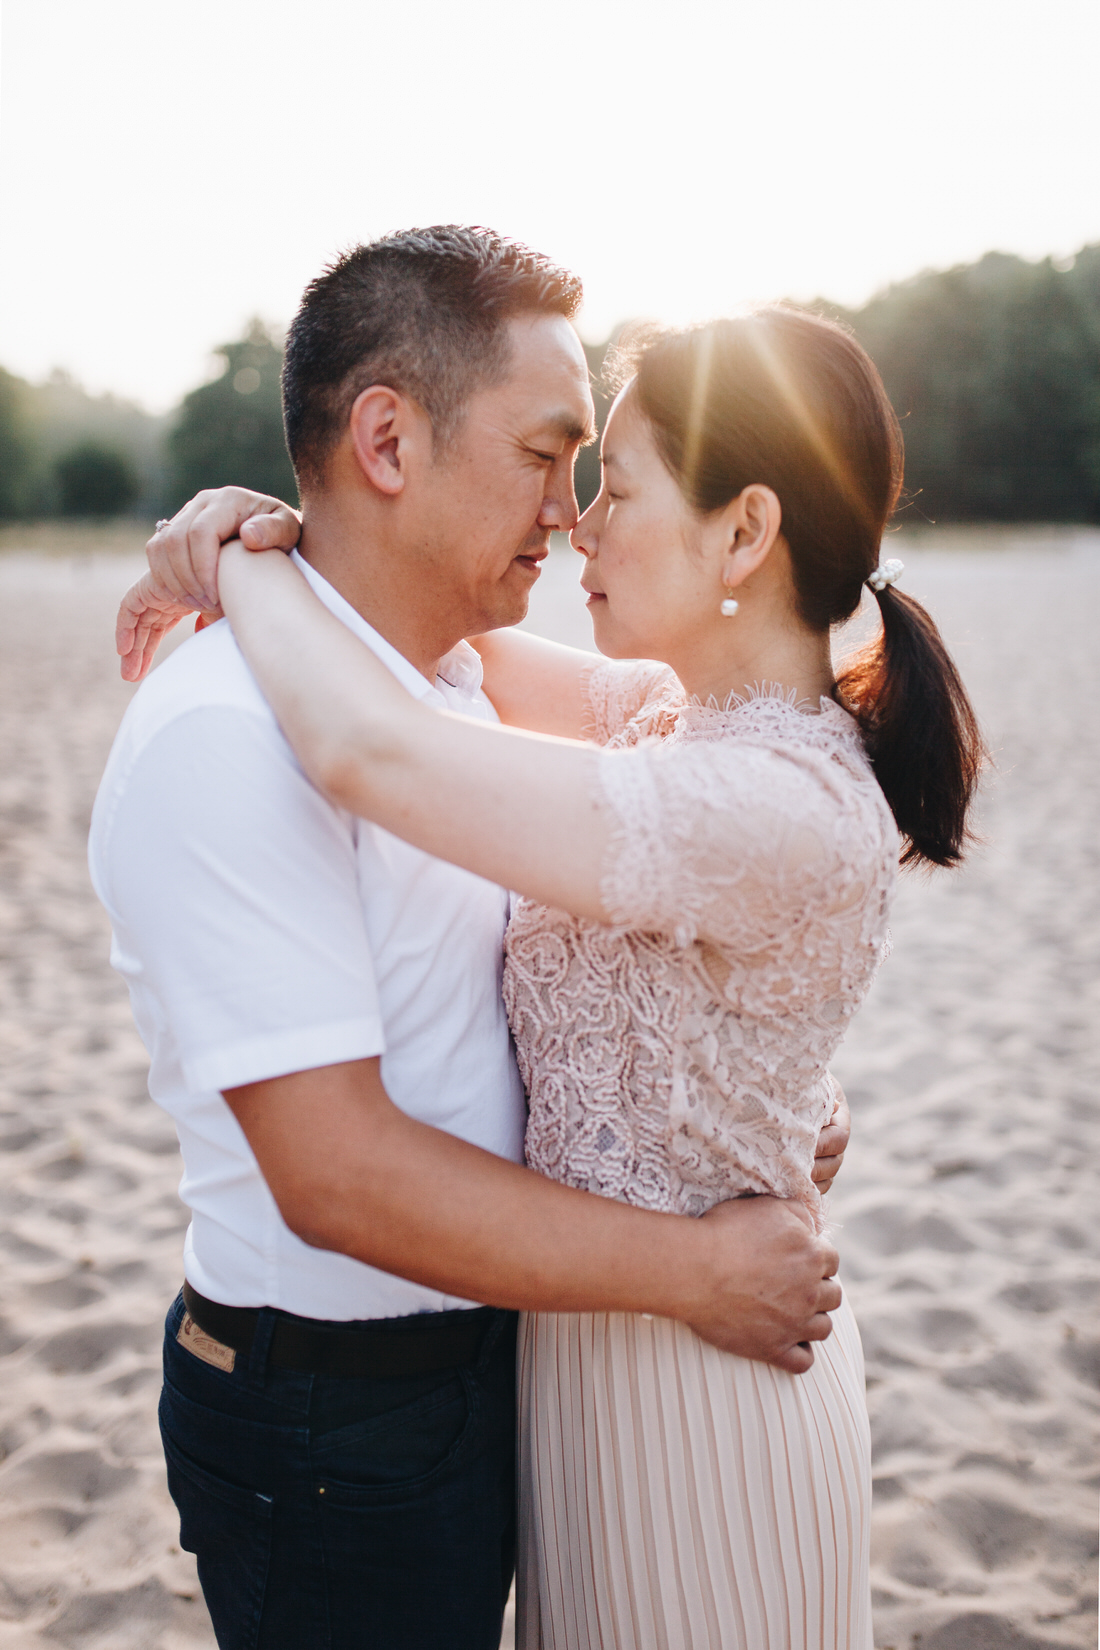 loveshoot veenendaal asian couple